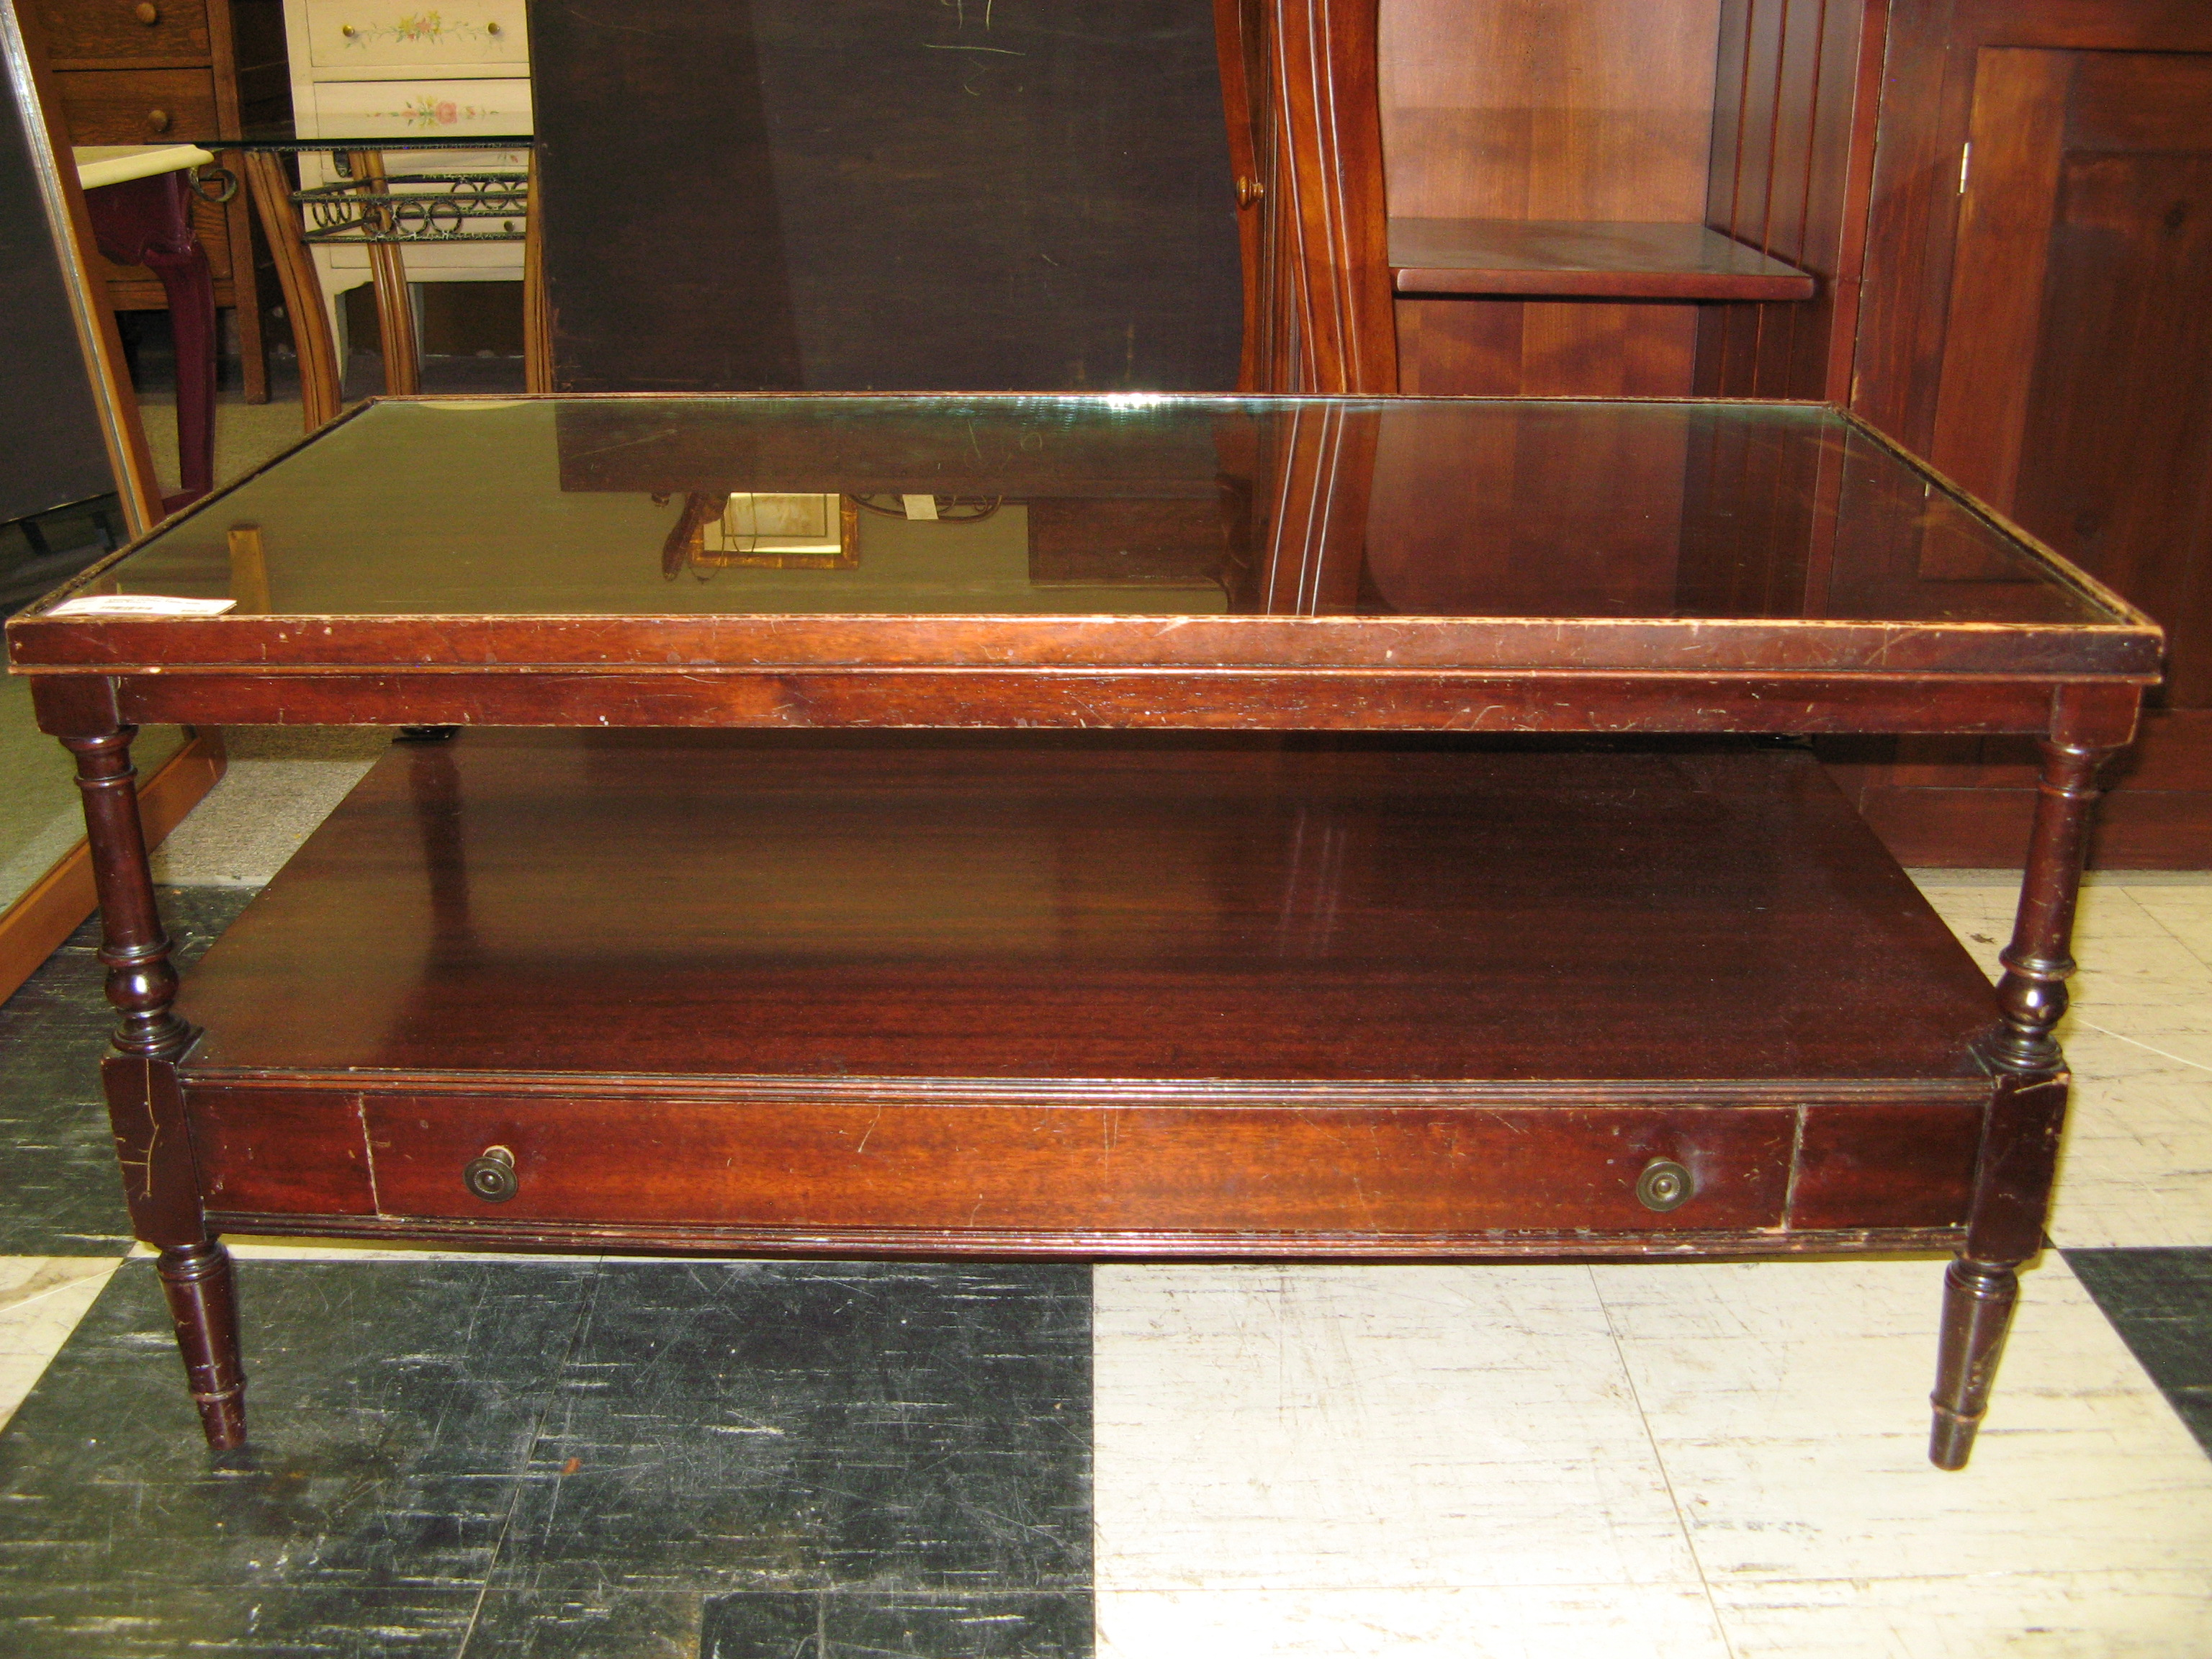 Vintage Coffee Table with Inset Glass Top & Lower Shelf, Dark Wood Stain